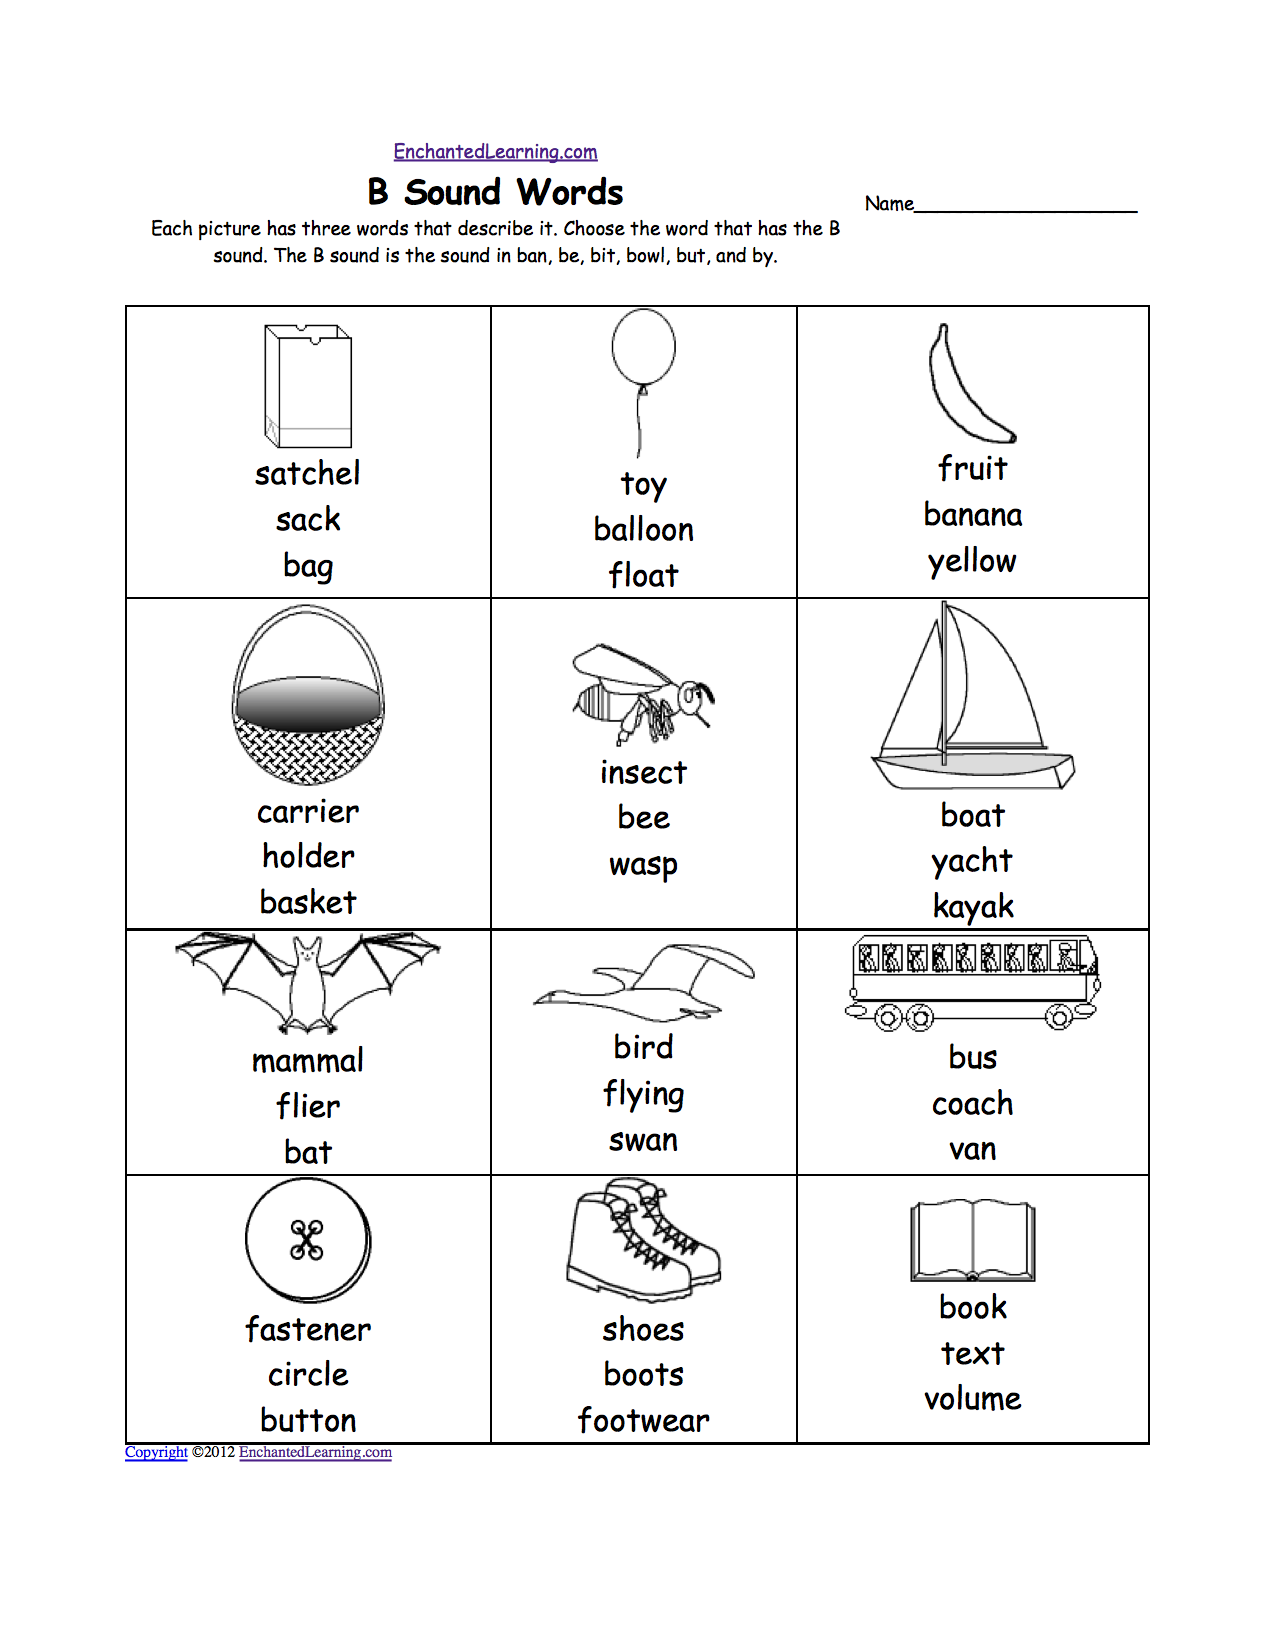 Aldiablosus  Prepossessing Phonics Worksheets Multiple Choice Worksheets To Print  With Outstanding Quotbquot Sound Phonics Worksheet Multiple Choice Each Picture Has Three Words That Describe It Choose The Word That Has A Quotbquot Sound The Quotbquot Sound Is The Sound  With Nice Rhyming Word Worksheets Also Long Division And Synthetic Division Worksheet In Addition English Worksheets For Grade  And Short And Long O Worksheets As Well As Compounds And Molecules Worksheet Additionally Stress Worksheets For Students From Enchantedlearningcom With Aldiablosus  Outstanding Phonics Worksheets Multiple Choice Worksheets To Print  With Nice Quotbquot Sound Phonics Worksheet Multiple Choice Each Picture Has Three Words That Describe It Choose The Word That Has A Quotbquot Sound The Quotbquot Sound Is The Sound  And Prepossessing Rhyming Word Worksheets Also Long Division And Synthetic Division Worksheet In Addition English Worksheets For Grade  From Enchantedlearningcom